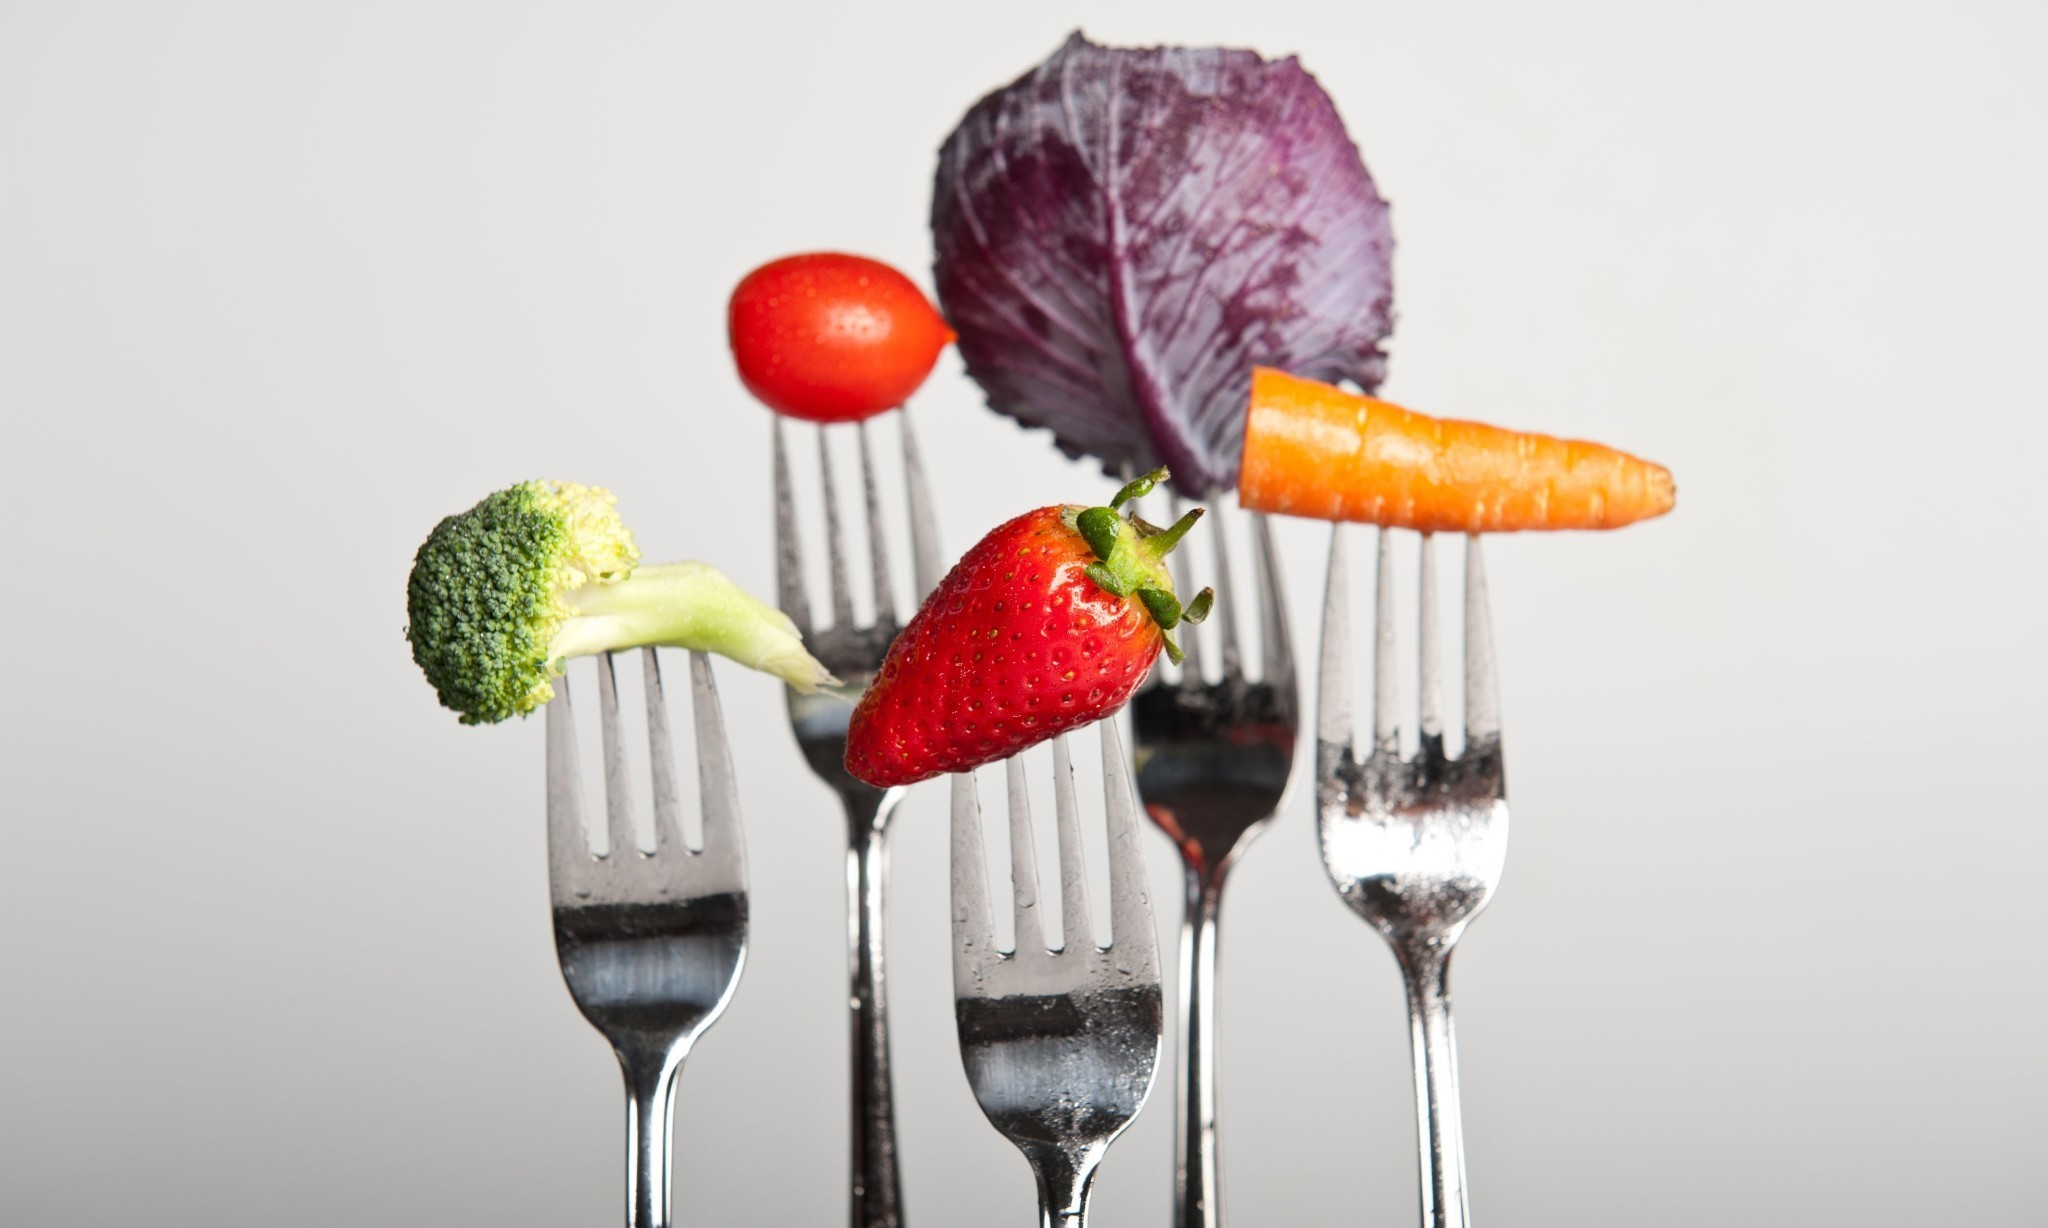 No diet, no detox: how to relearn the art of eating